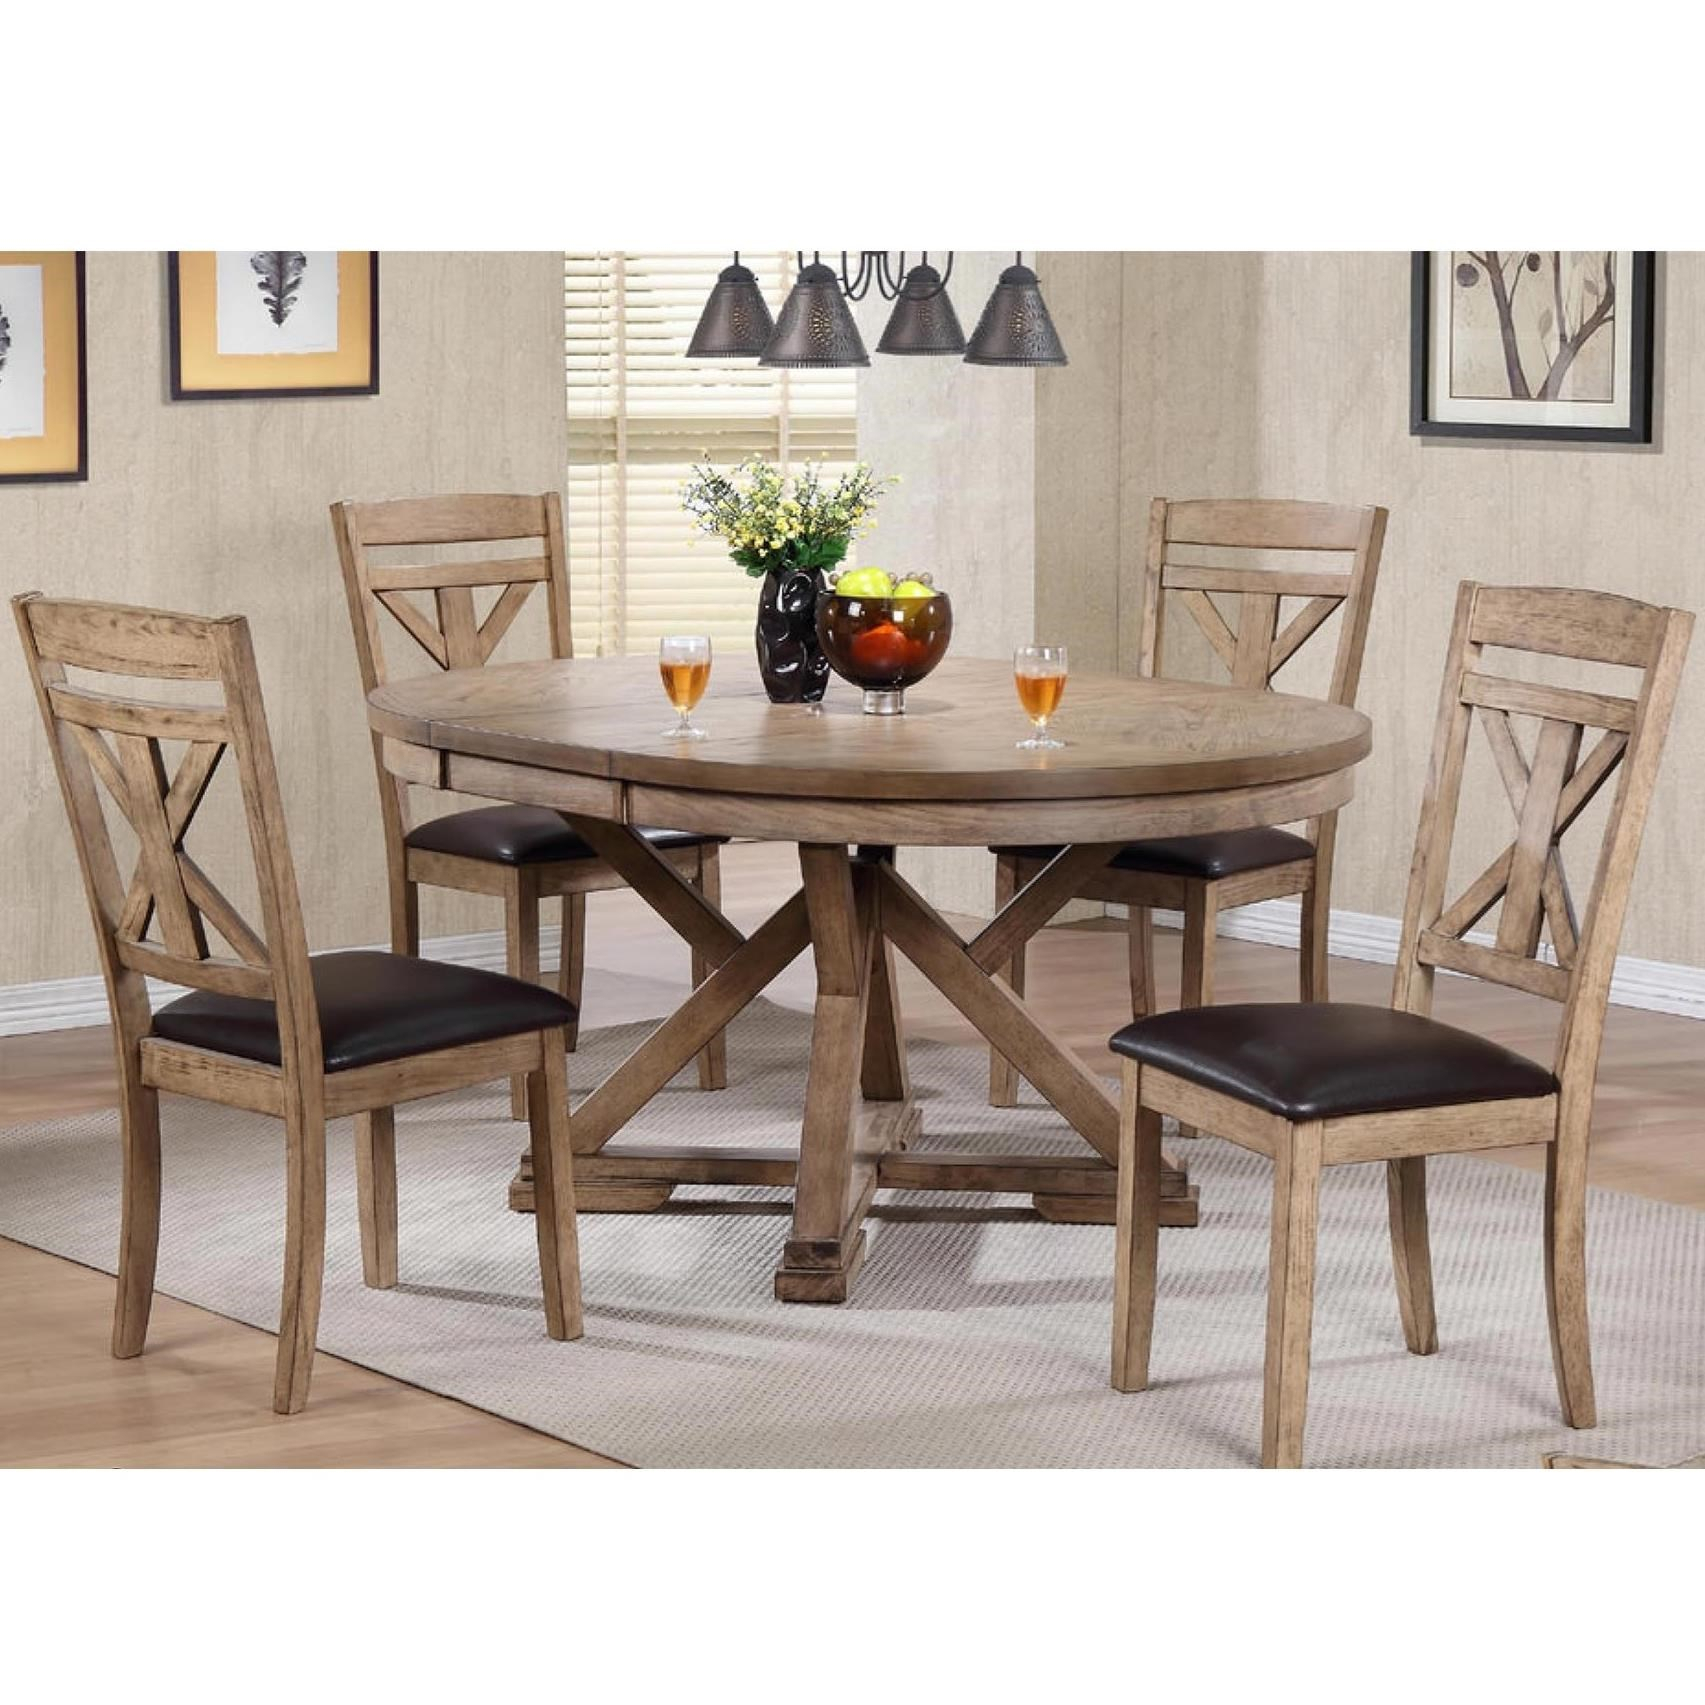 Grandview 5 Piece Dining Setwinners Only At Dunk & Bright Furniture Within Most Popular 5 Piece Dining Sets (View 7 of 20)